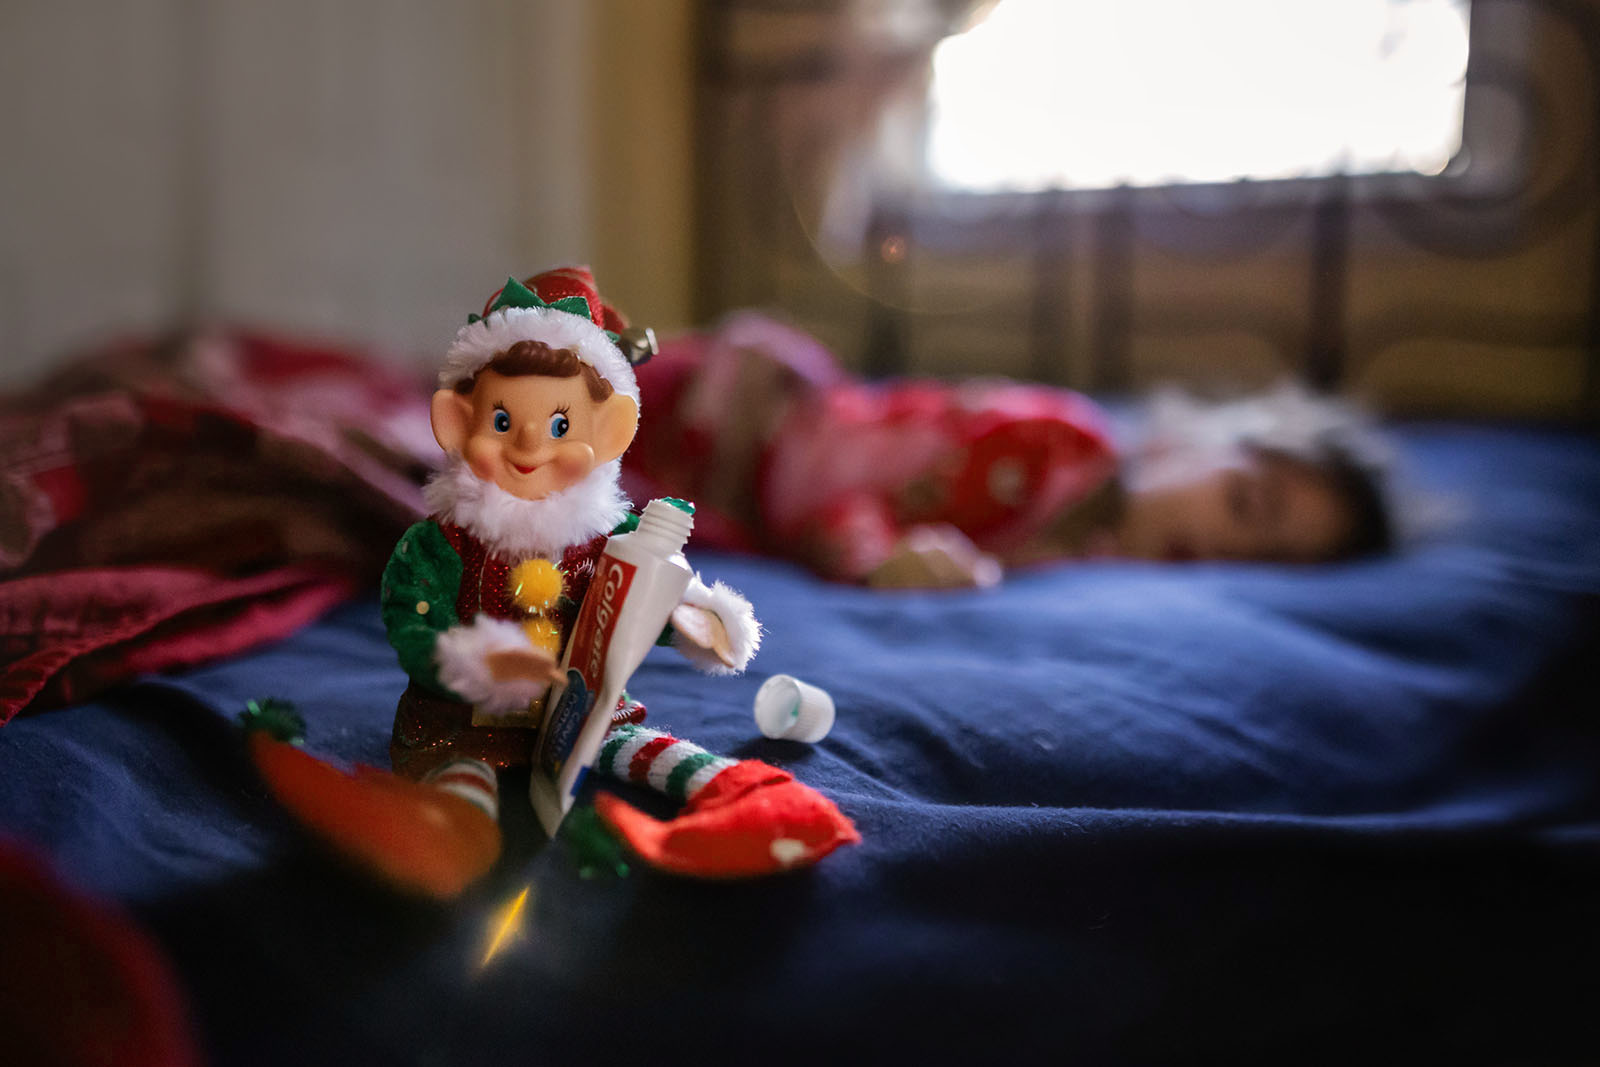 Add magic to indoor holiday photos with a wider aperture